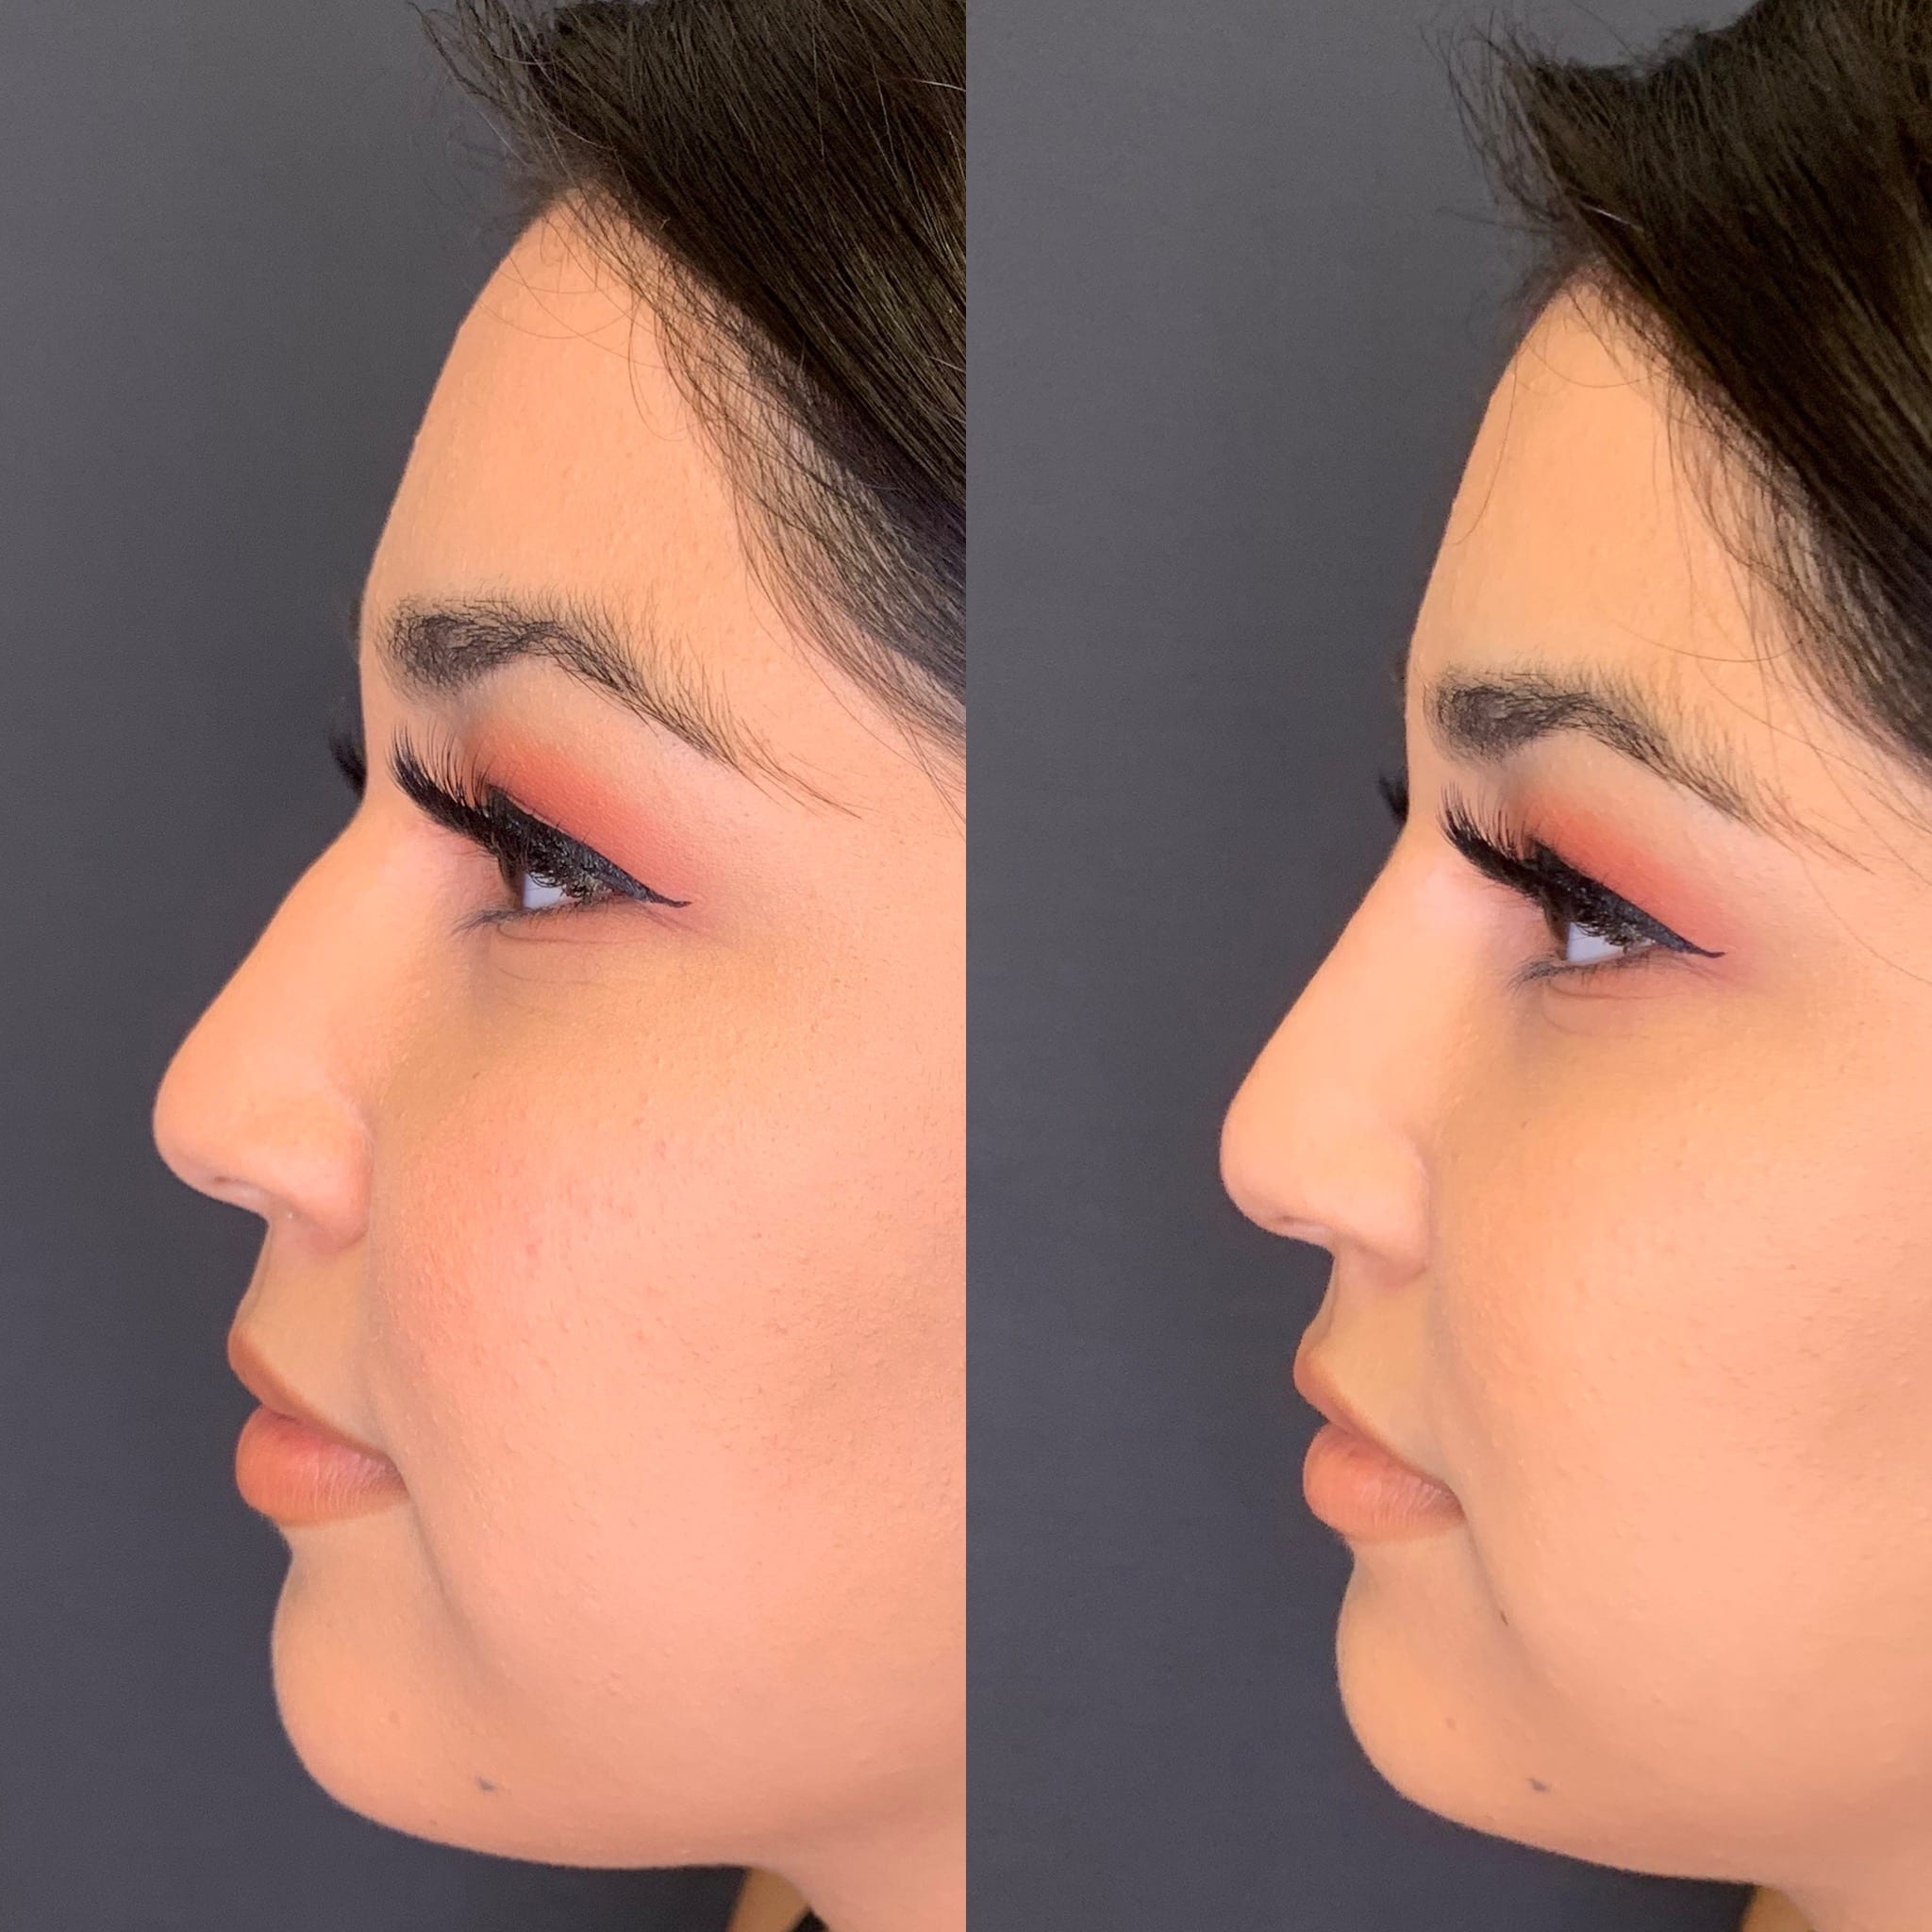 22 y/o Hispanic F immediately after injecting voluma above her nasal hump to improve her side profile.